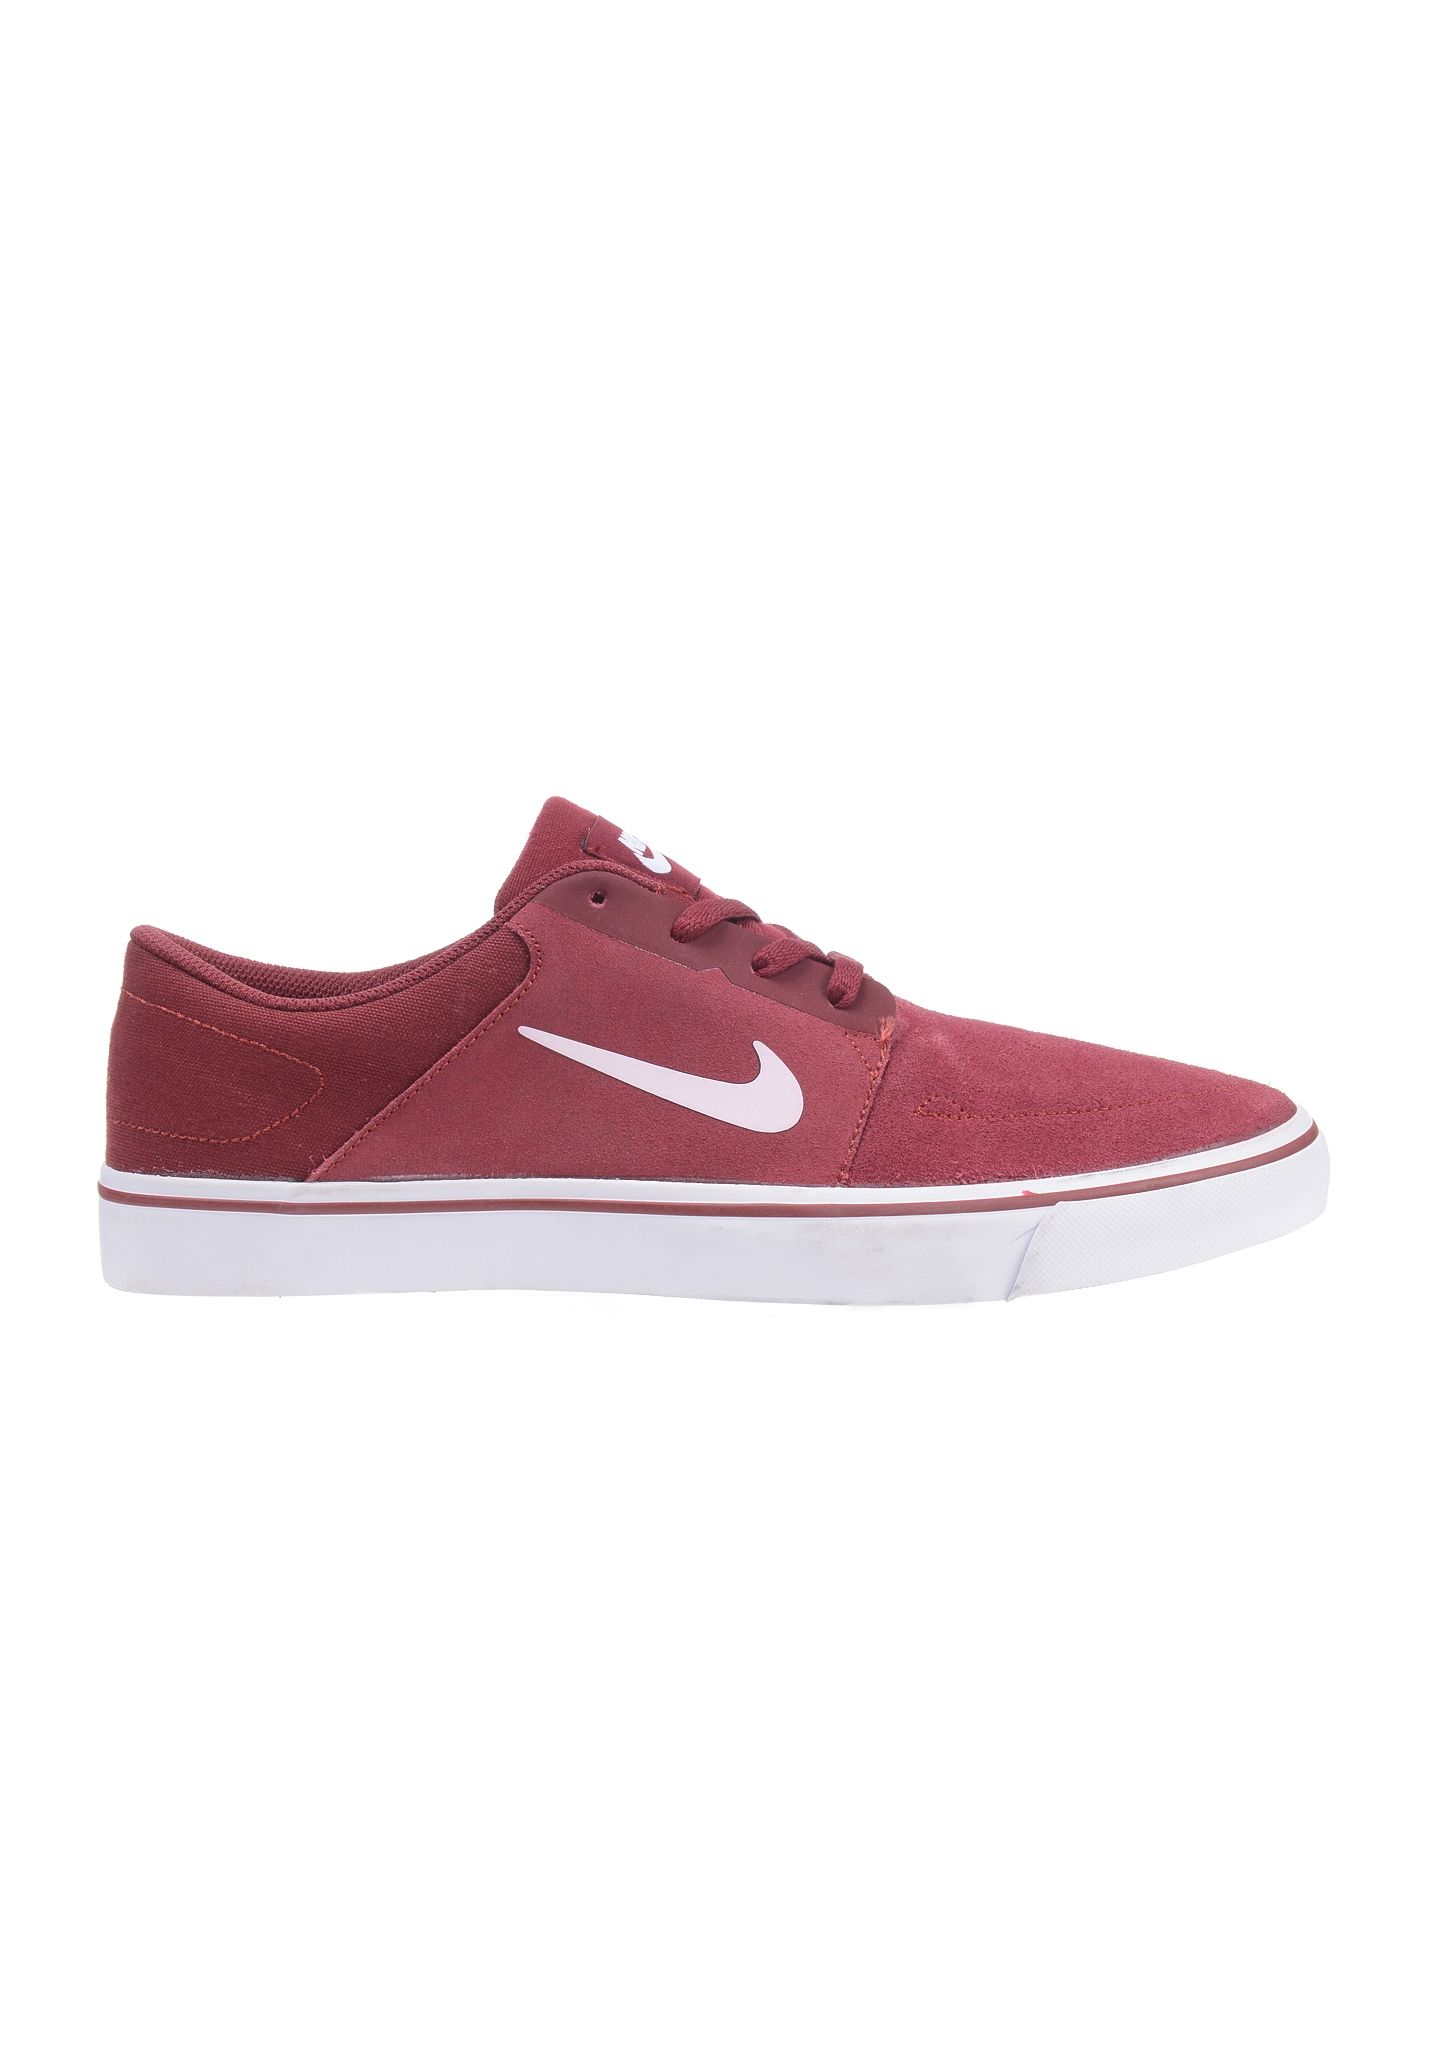 nike sb portmore baskets pour homme rouge nike shox uomo liquidazione. Black Bedroom Furniture Sets. Home Design Ideas